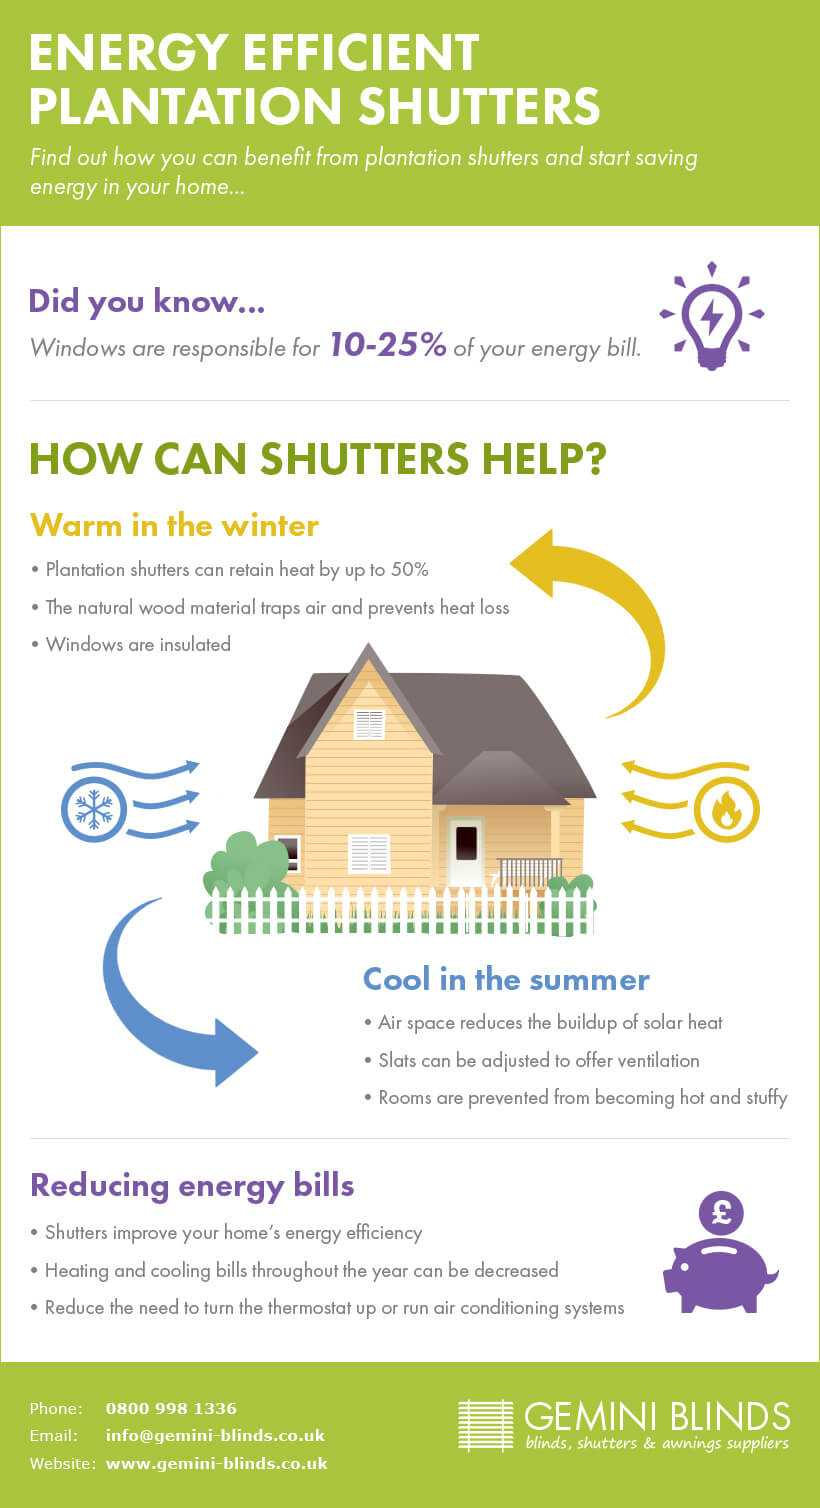 Energy Efficient Plantation Shutters Infographic